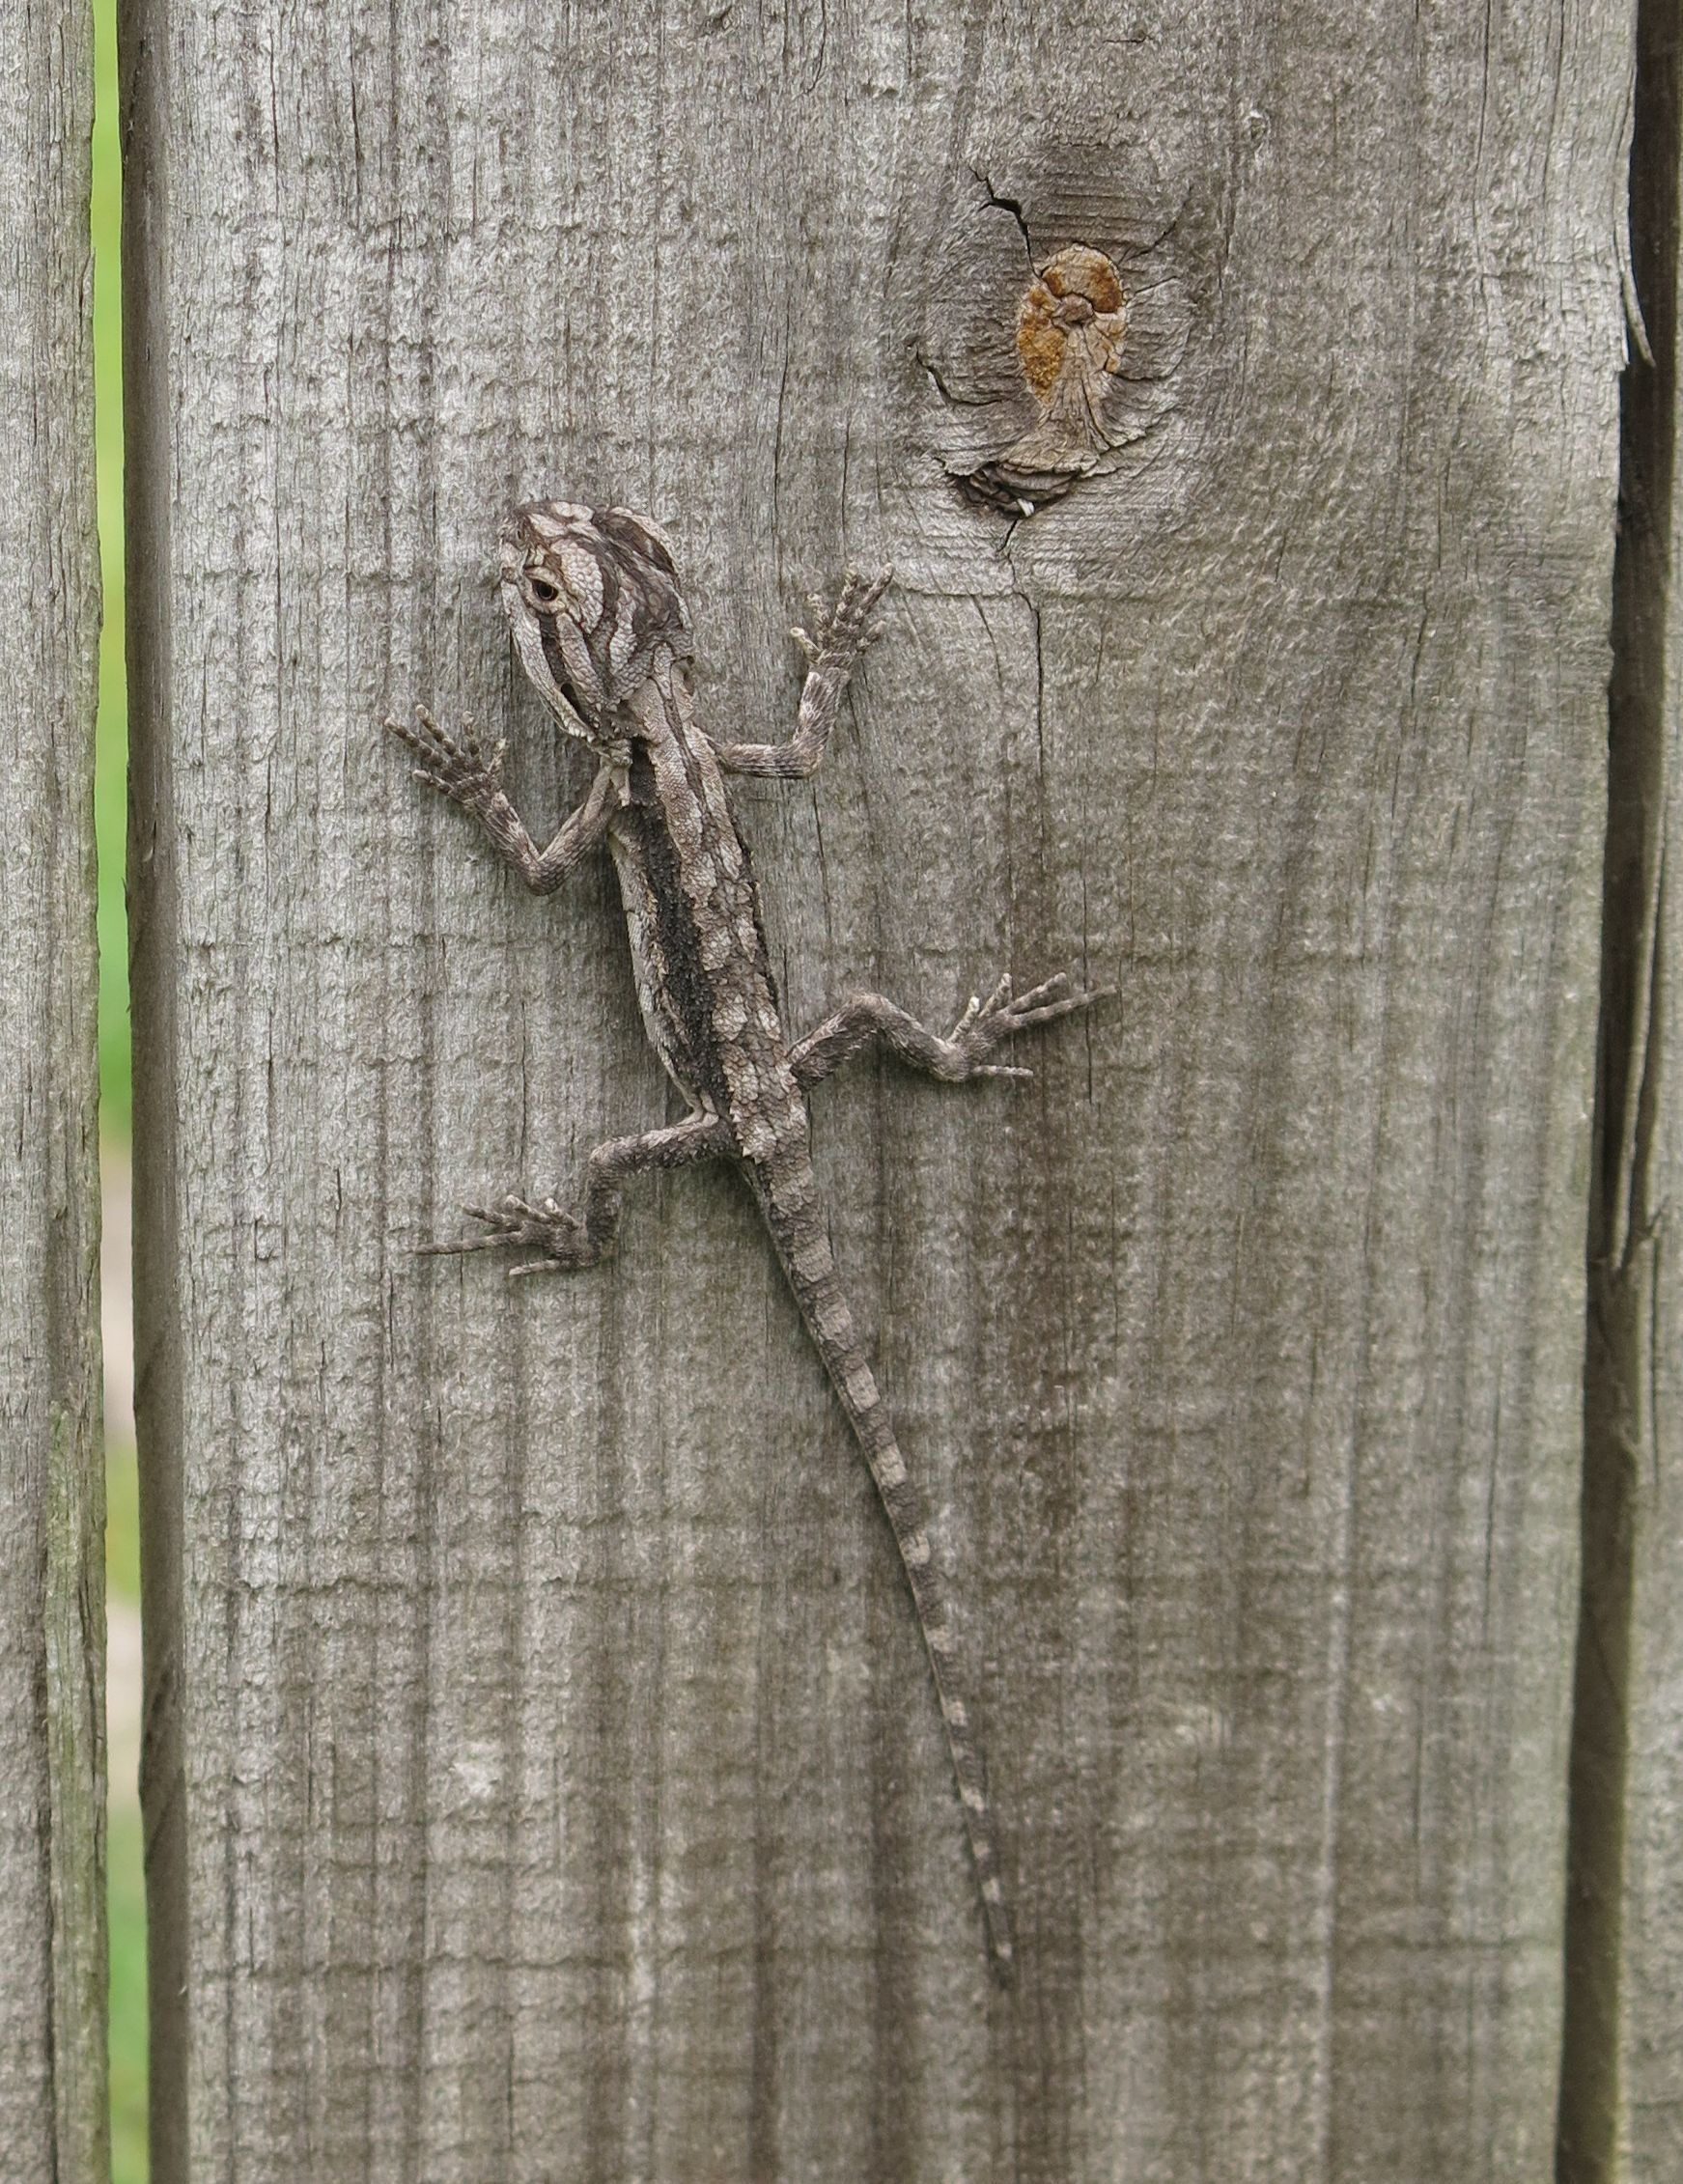 Baby Bearded Dragon visitor in our backyard. So cute ...